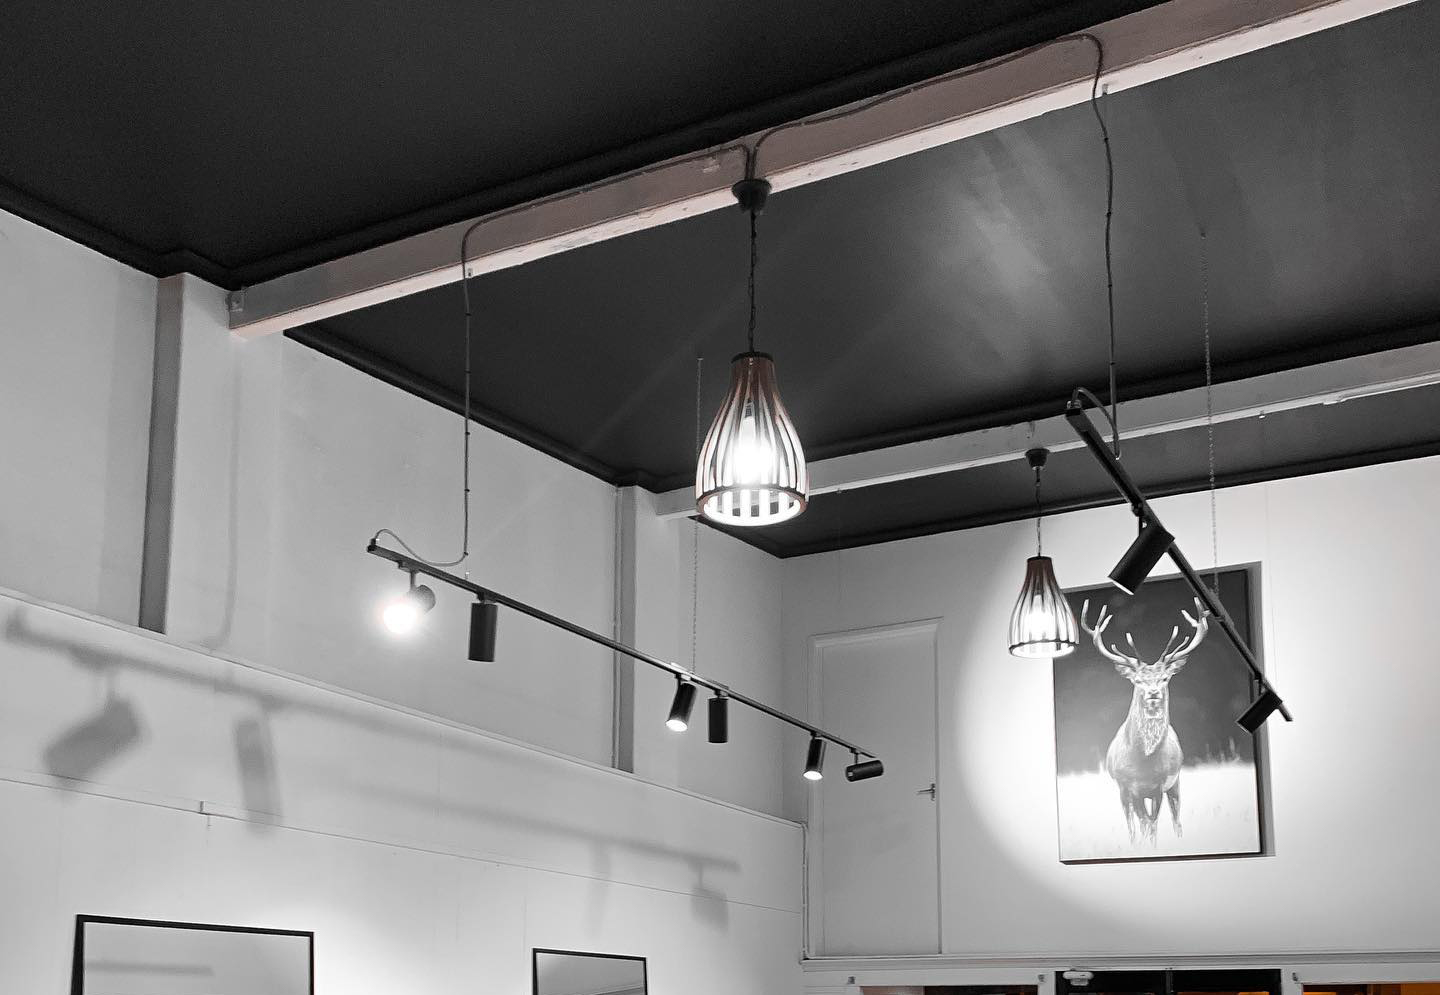 GCM lighting and electrical